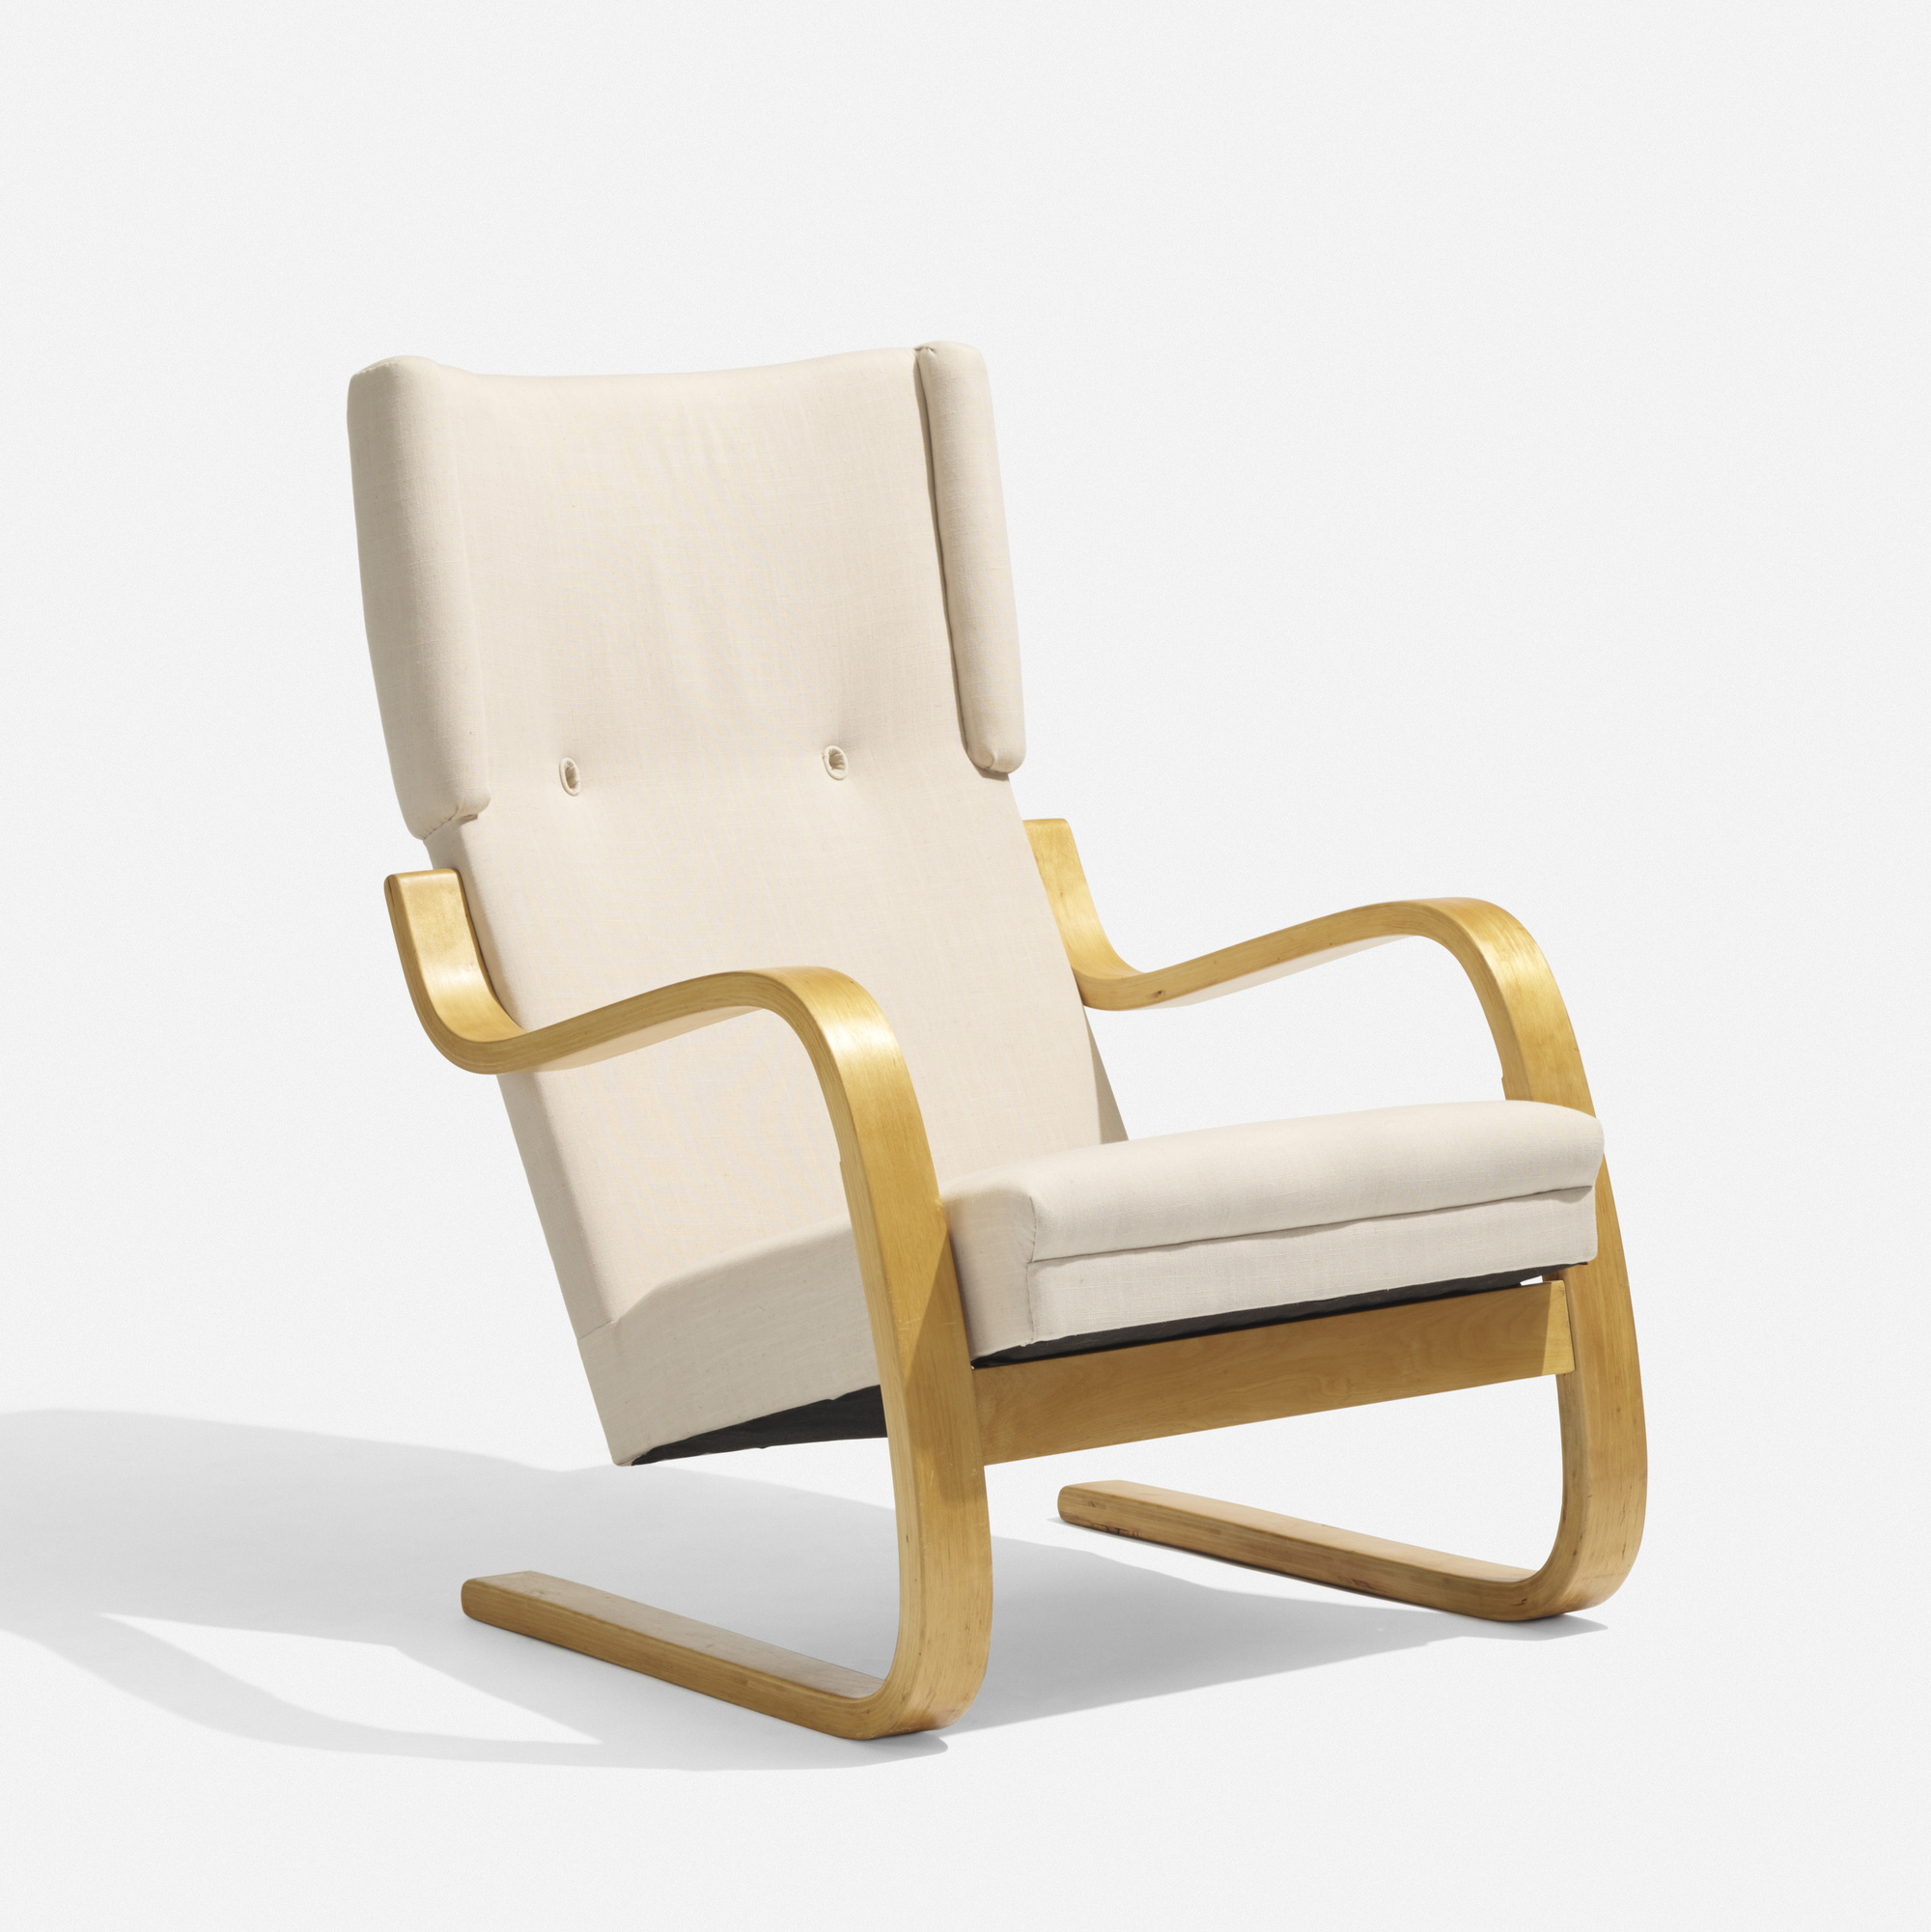 Vintage aalto chair - 319 Alvar Aalto Cantilevered Armchair Model 36 401 1 Of 3